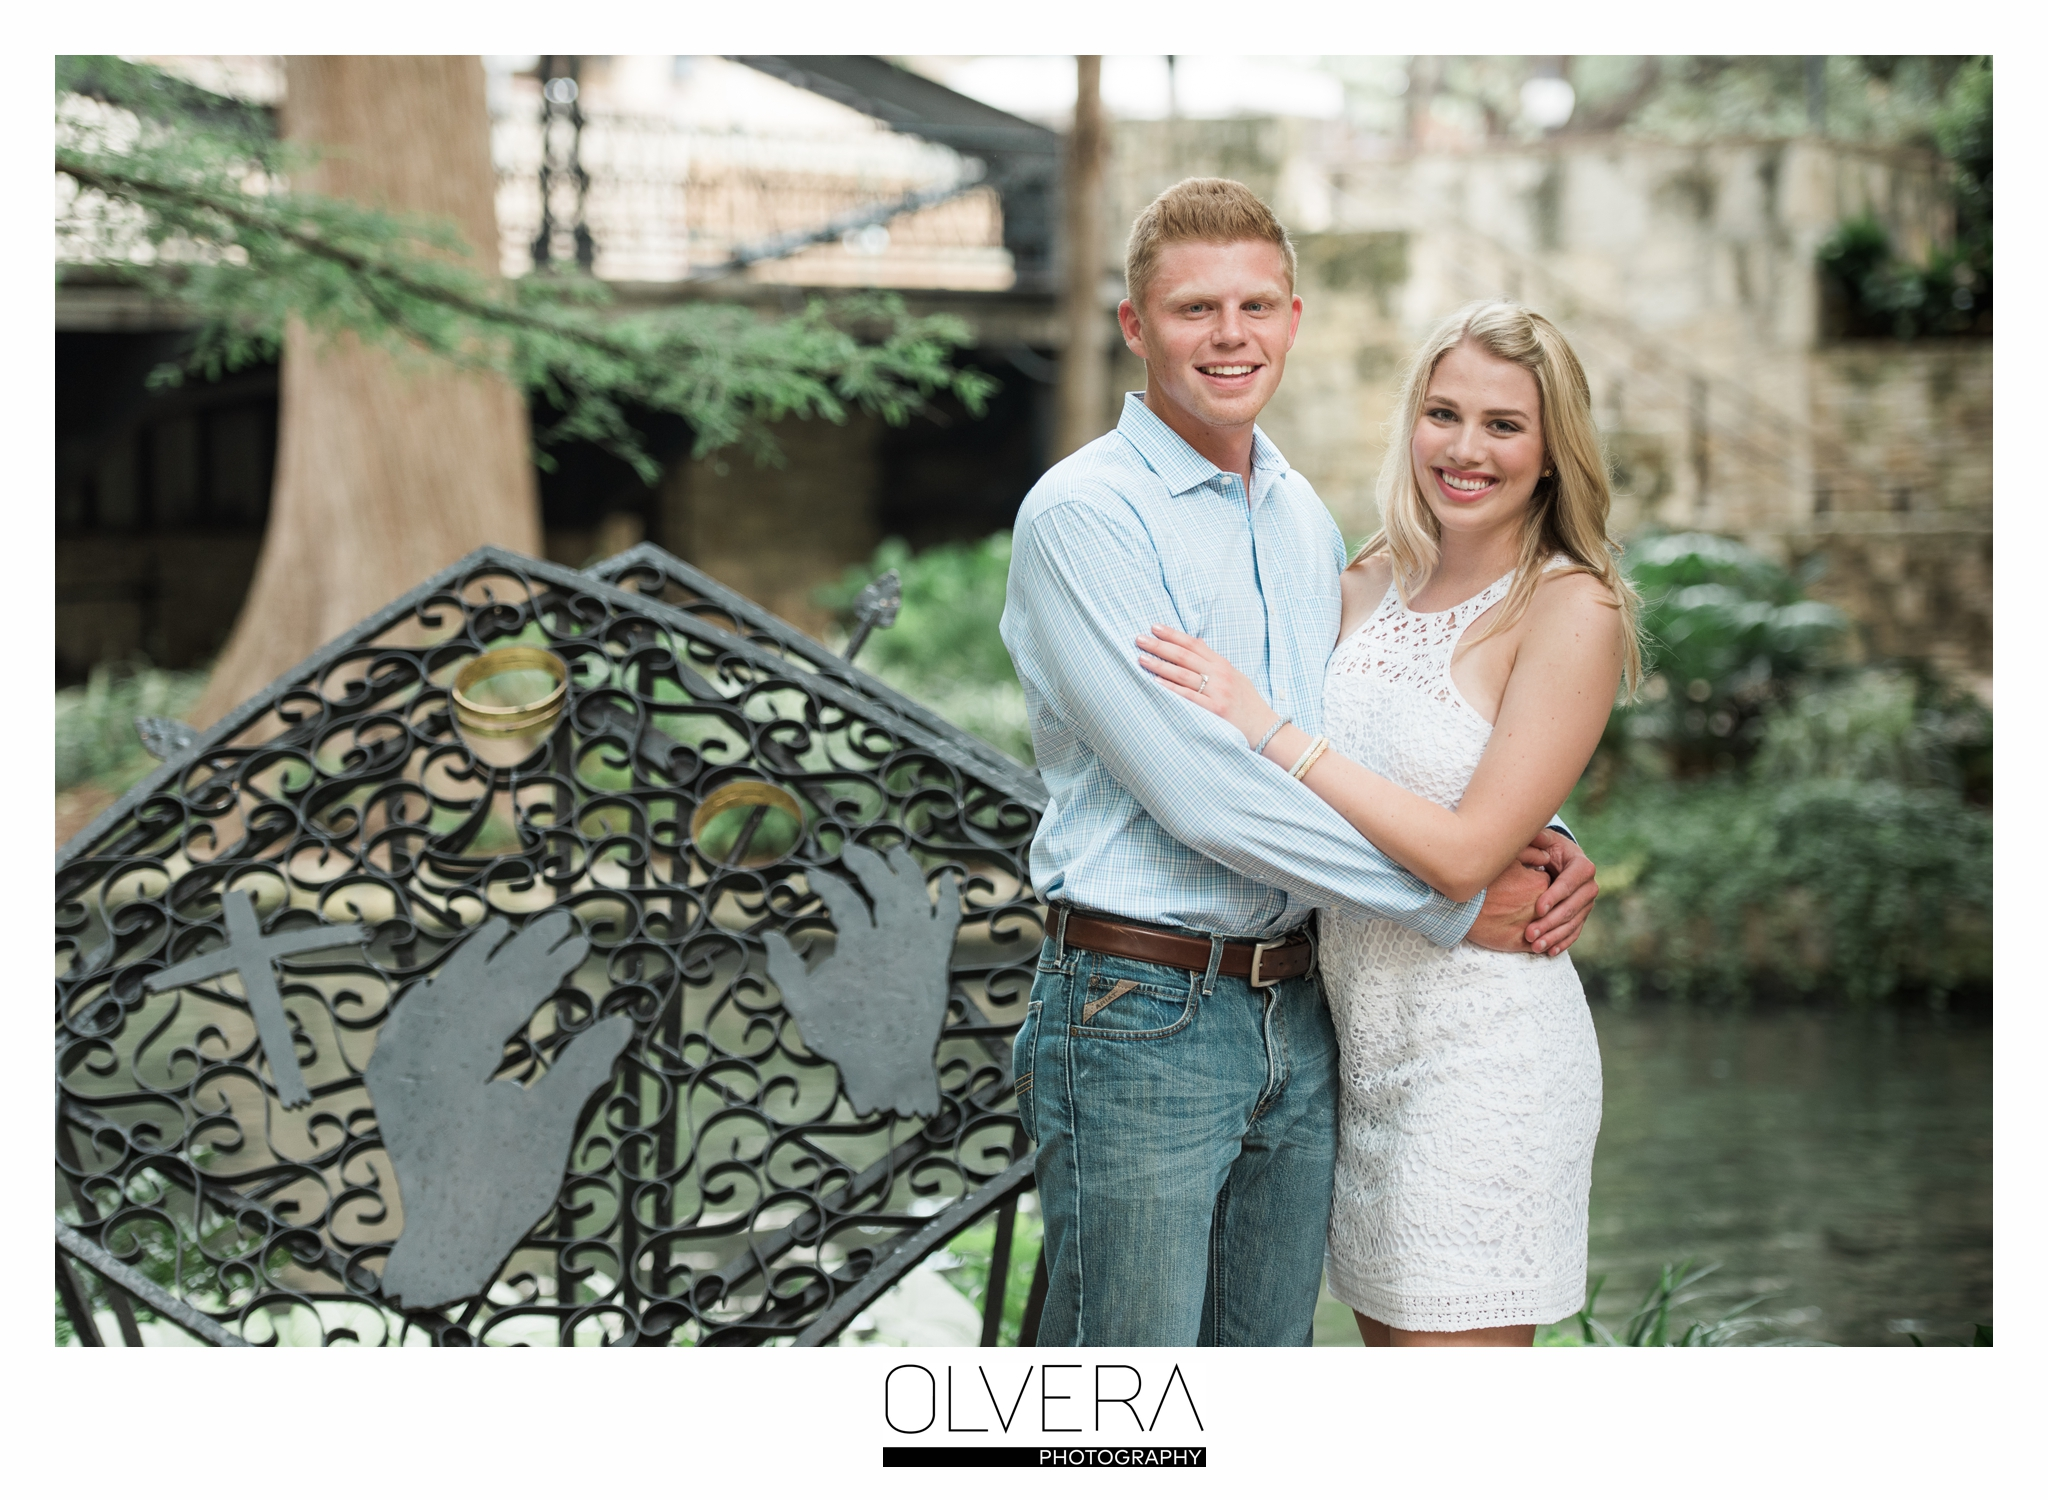 Riverwalk Proposal on Marriage Island, San Antonio, TX.